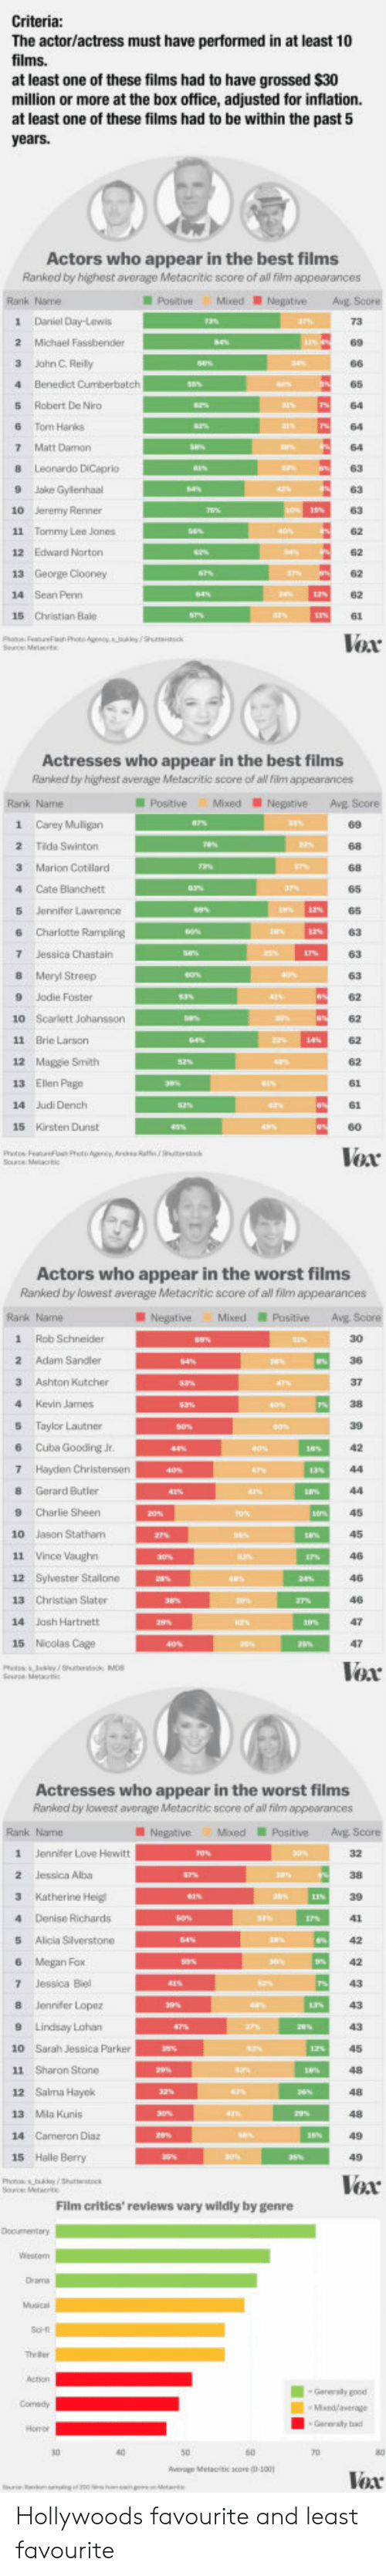 Jennifer Lopez: The actor/actress must have performed in at least 10  films.  at least one of these films had to have grossed $30  million or more at the box office, adjusted for inflation.  at least one of these films had to be within the past 5  Actor  s who appear in the best films  Ranked by highest average Metacritic score of all film appearances  Rank Name  PostiveMixed NegativeAg Score  1 Daniel Day-Lewis  2 Michael Fassbender  3 Jahn C Reily  4 Benedict Cunberbatch  5 Robert De Niro  6 Tom Hanks  7 Matt Damon  8 Leonardo DiCeprio  9 Jake Gylenhaal  10 Jeremy Renner  11 Tommy Lee Jones  12 Edward Norton  65  62  14 Sean Penn  15 Christian Bale  Vox  Actresses who appear in the best films  Ranked by highest average Metacritic score of al fiim appearances  PositiveMixedNegative Avg Score  1 Carey Muligan  89  2 Tida Swinton  3 Marion Cotllard  4 Cate Blanchett  5 Jennifer Lawrence  6 Charlotte Rampling  63  8 Meryl Streep  9 Jodie Foster  10 Scarlett Johansson  11 Brie Larson  12 Maggie Smith  13 Ellen Page  14 Judi Dench  15 Kirsten Dunst  62  62  62  62  6  Voar  Actors who appear in the worst films  Ranked by lowest average Metacntic score of al fim appearances  Rank Name  Negative MixedPositive Avg Score  1 Rob Schneider  2 Adam Sandler  3 Ashton Kutcher  4 Kevin James  5 Taylor Lautner  6 Cuba Gooding Jr.  7 Hayden Christensen  8 Gerard Butler  30  9 Charlie Sheen ESI,  45  10 Jason Statham  12 Syvester Stallone  13 Christian Slater  14 Jash Hartnett  15 Nicolas Cage  Vox  Actresses who appear in the worst films  Ranked by lowest average Metacritic score of all film appearances  Rank Name  NegativeMxedPositiveAvE Score  1  Jennifer Love Hewitt  2 Jessica Alba  4 Denise Richards  5 Alica Slverstone  6 Megan Fox  7 Jessica Biel  8 Jennifer Lopez  9 Lindsay Lohan  10 Sarah Jessica Parker  11 Sharon Stone  12 Salma Hayck  13 Mla Kunis  14 Cameron Diaz  15 Halle Berry  43  48  48  Voar  Film critics' reviews vary wildly by genre  Generaly b  verage Melacritic save (D-100 Hollywoods favourite and least favourite